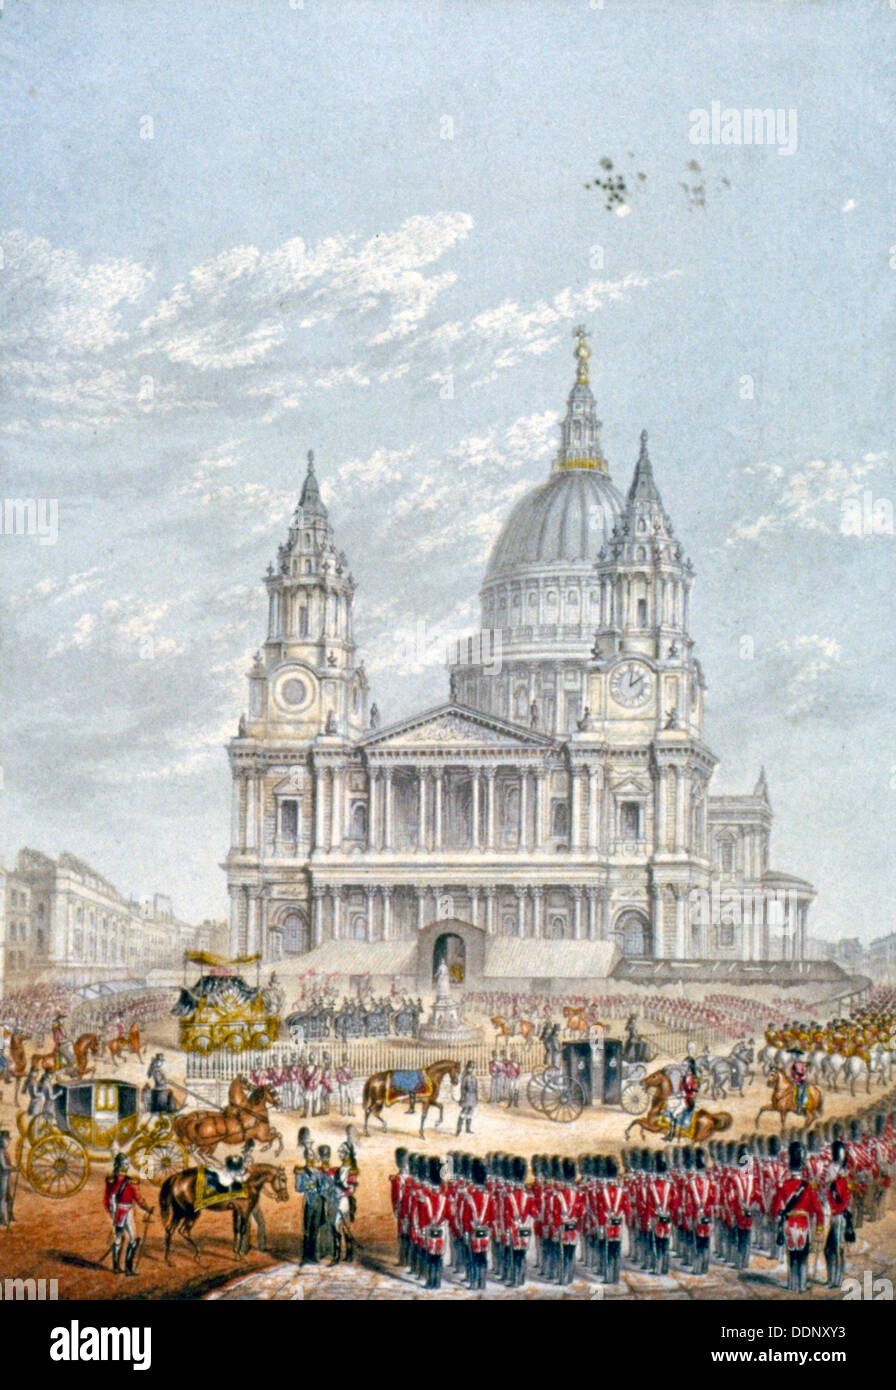 Funeral of the Duke of Wellington, St Paul's Cathedral, City of London, 18 November, 1852. Artist: Anon - Stock Image